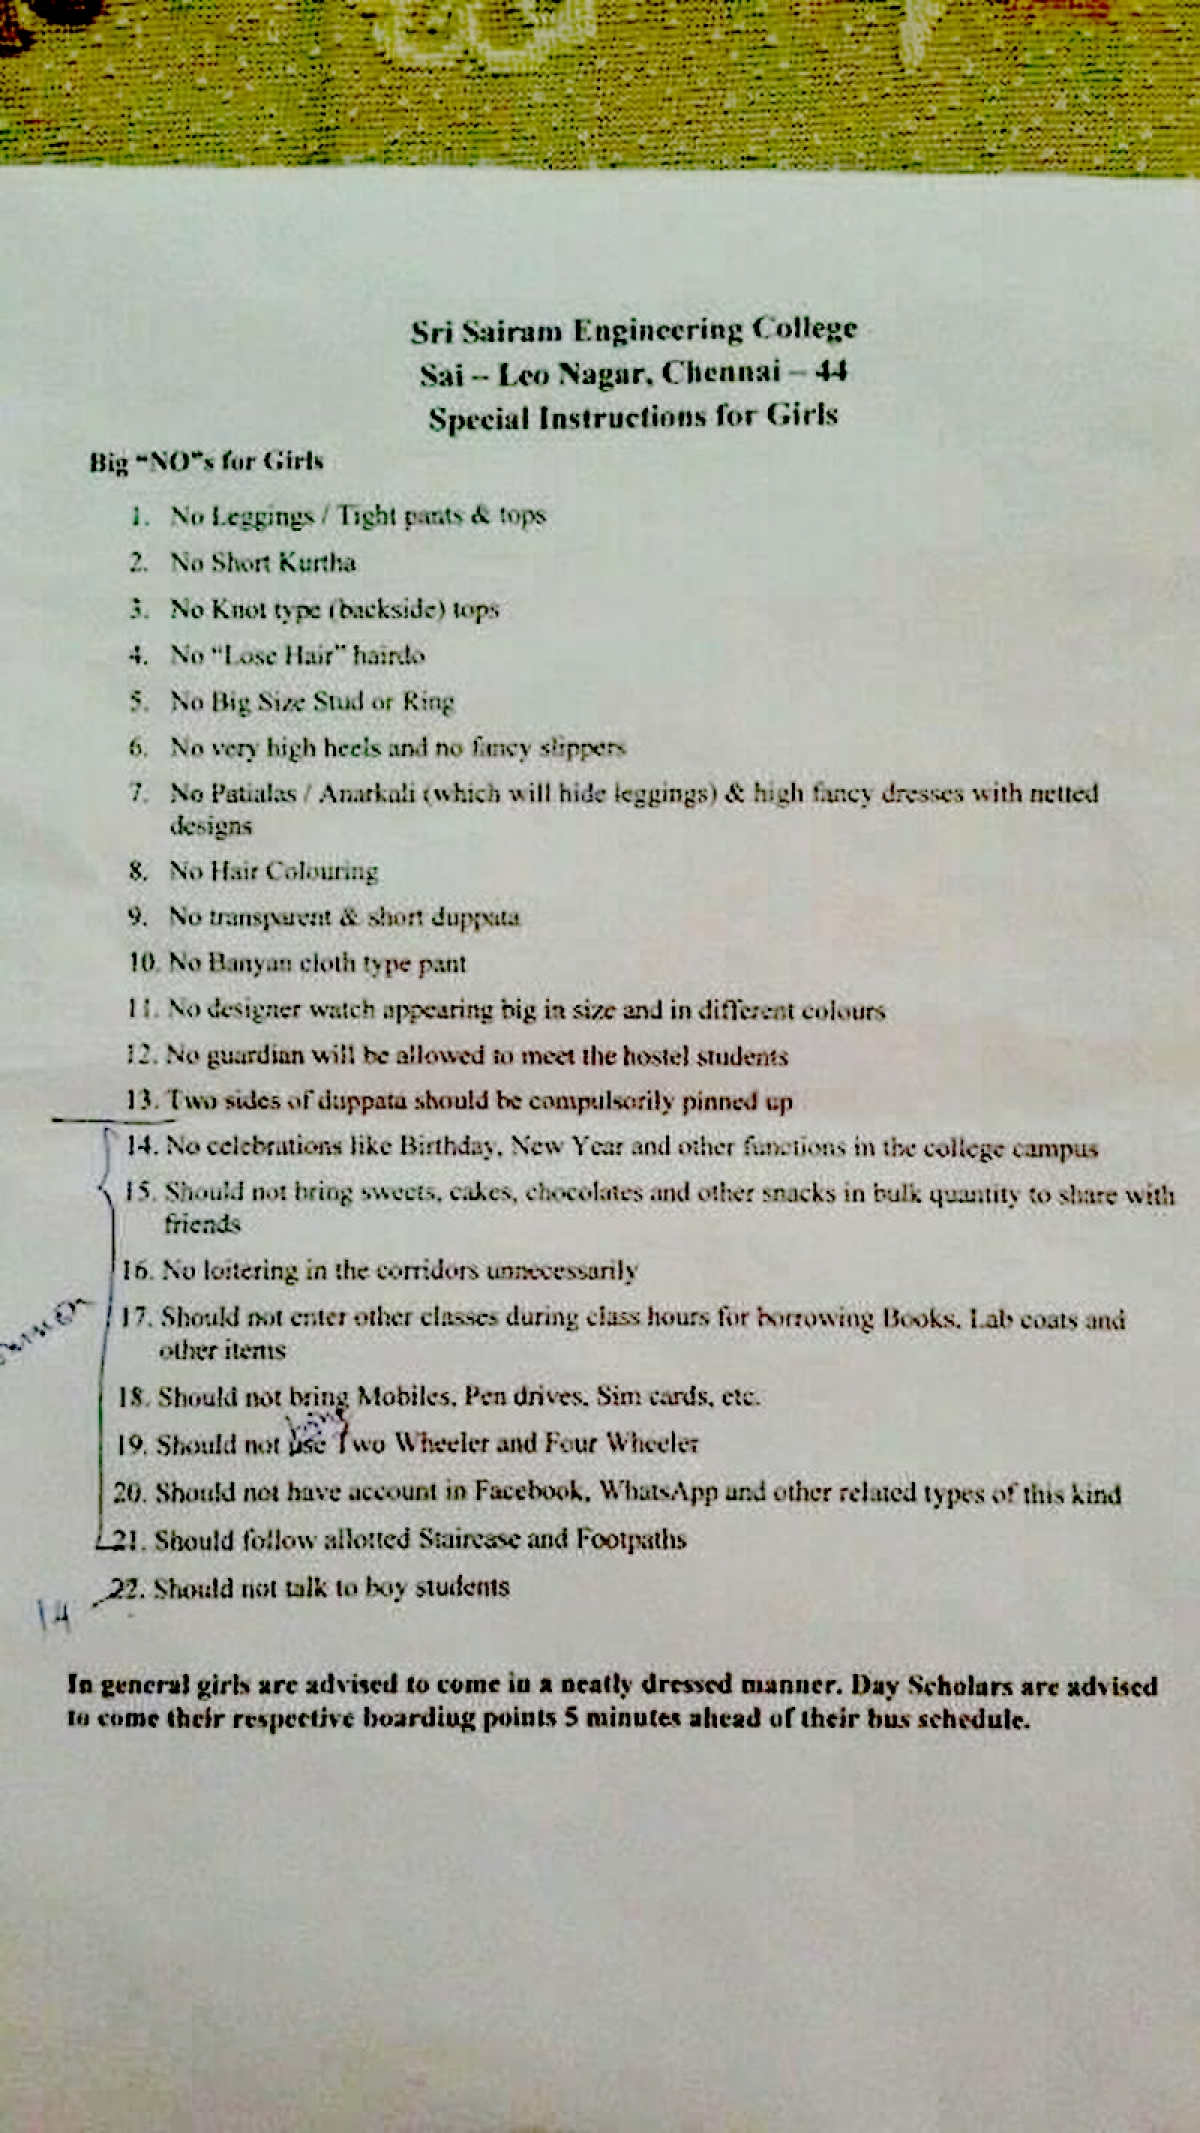 Circular with Regressive Rules for Girl Students Goes Viral